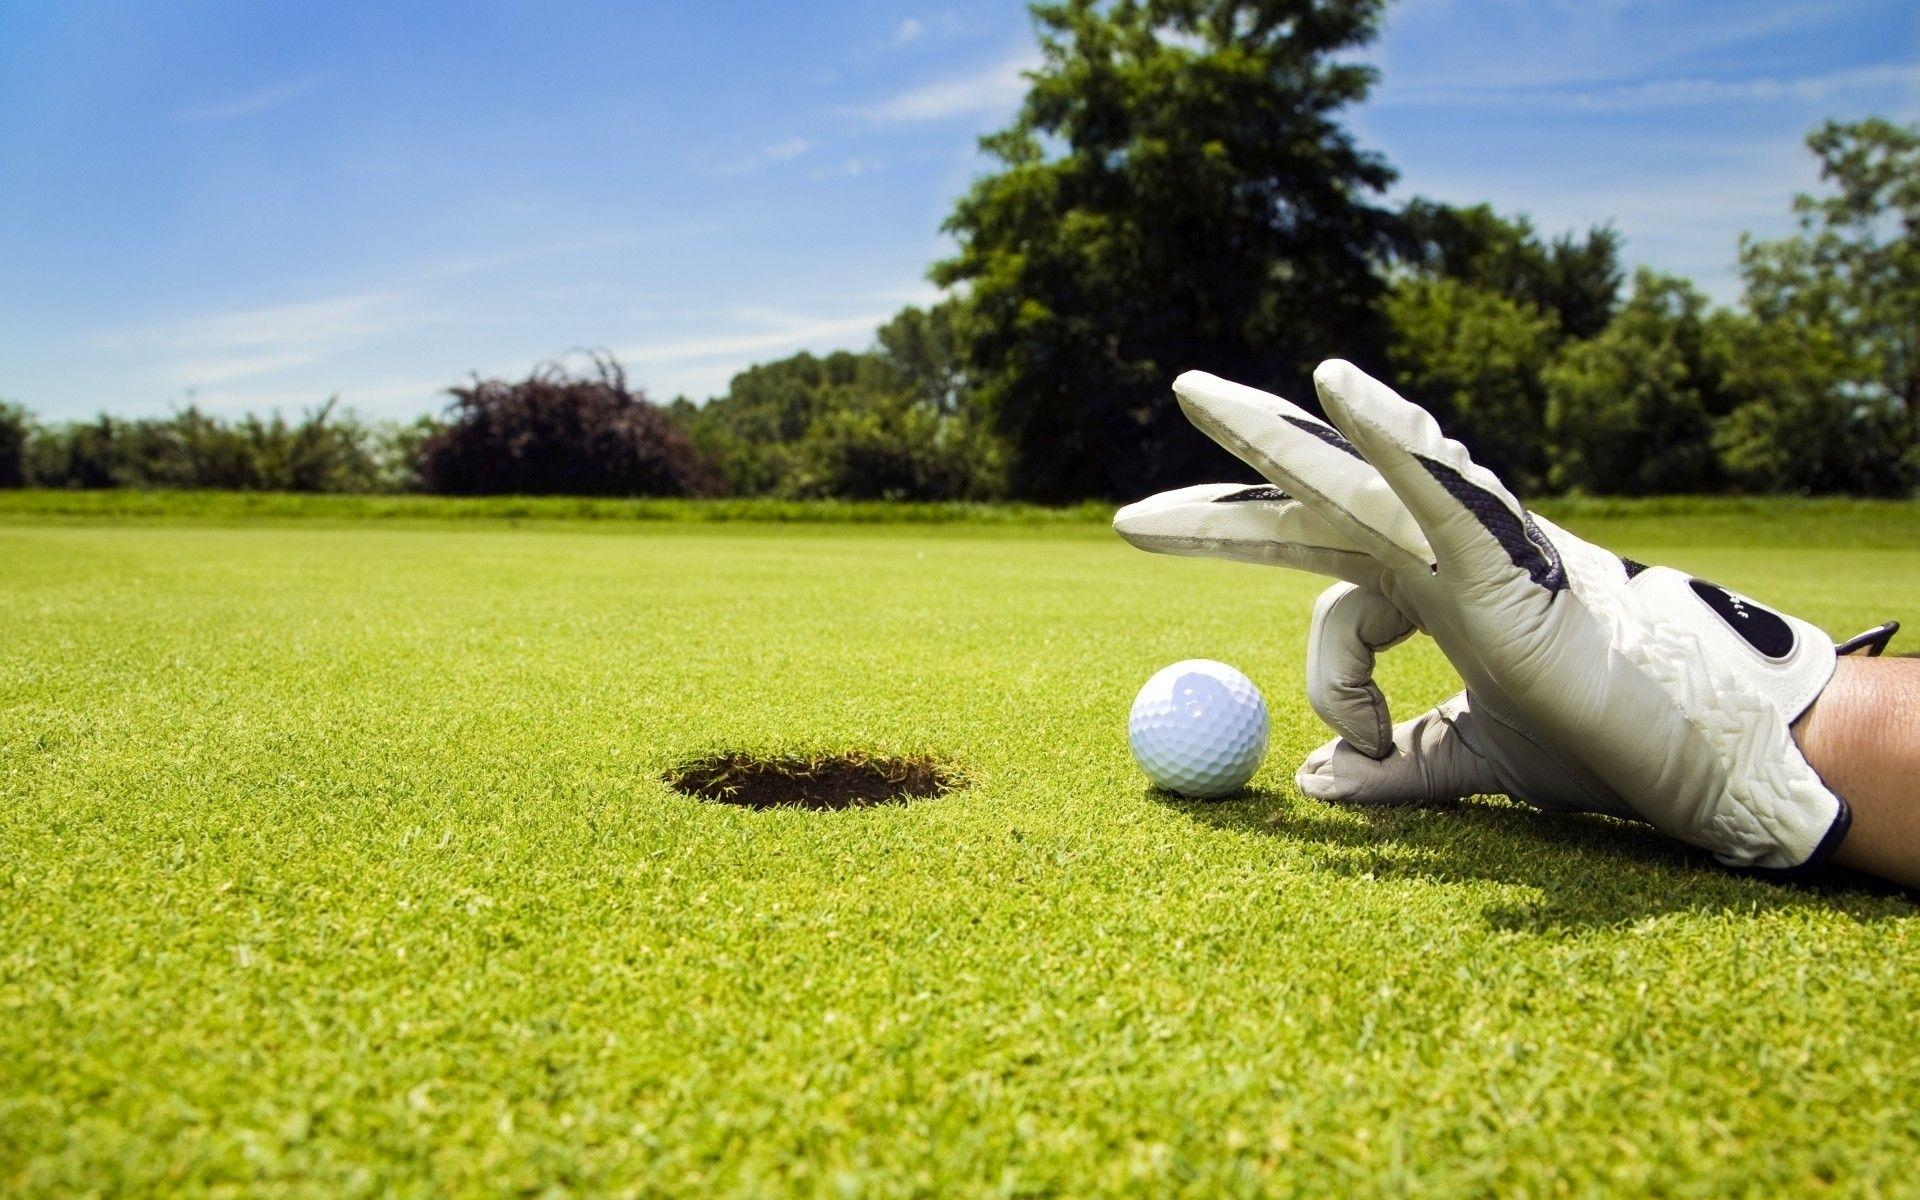 Hand on the green wearing a golfer's glove about to flick the golf ball into the hole.